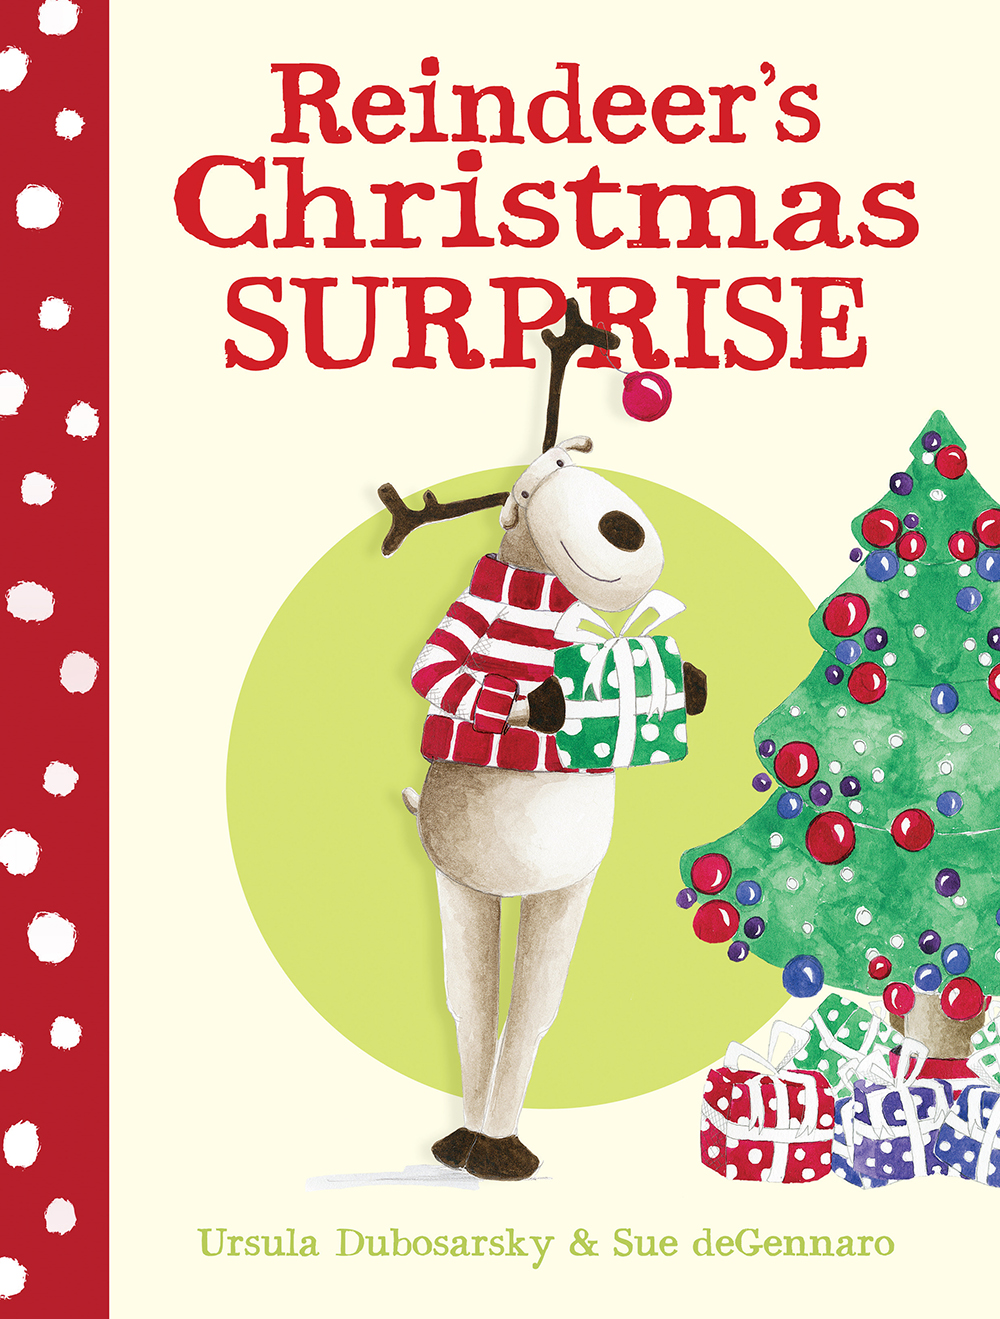 Reindeer's Christmas Surprise - Ursula Dubosarsky   Sue deGennaro    Allen and Unwin